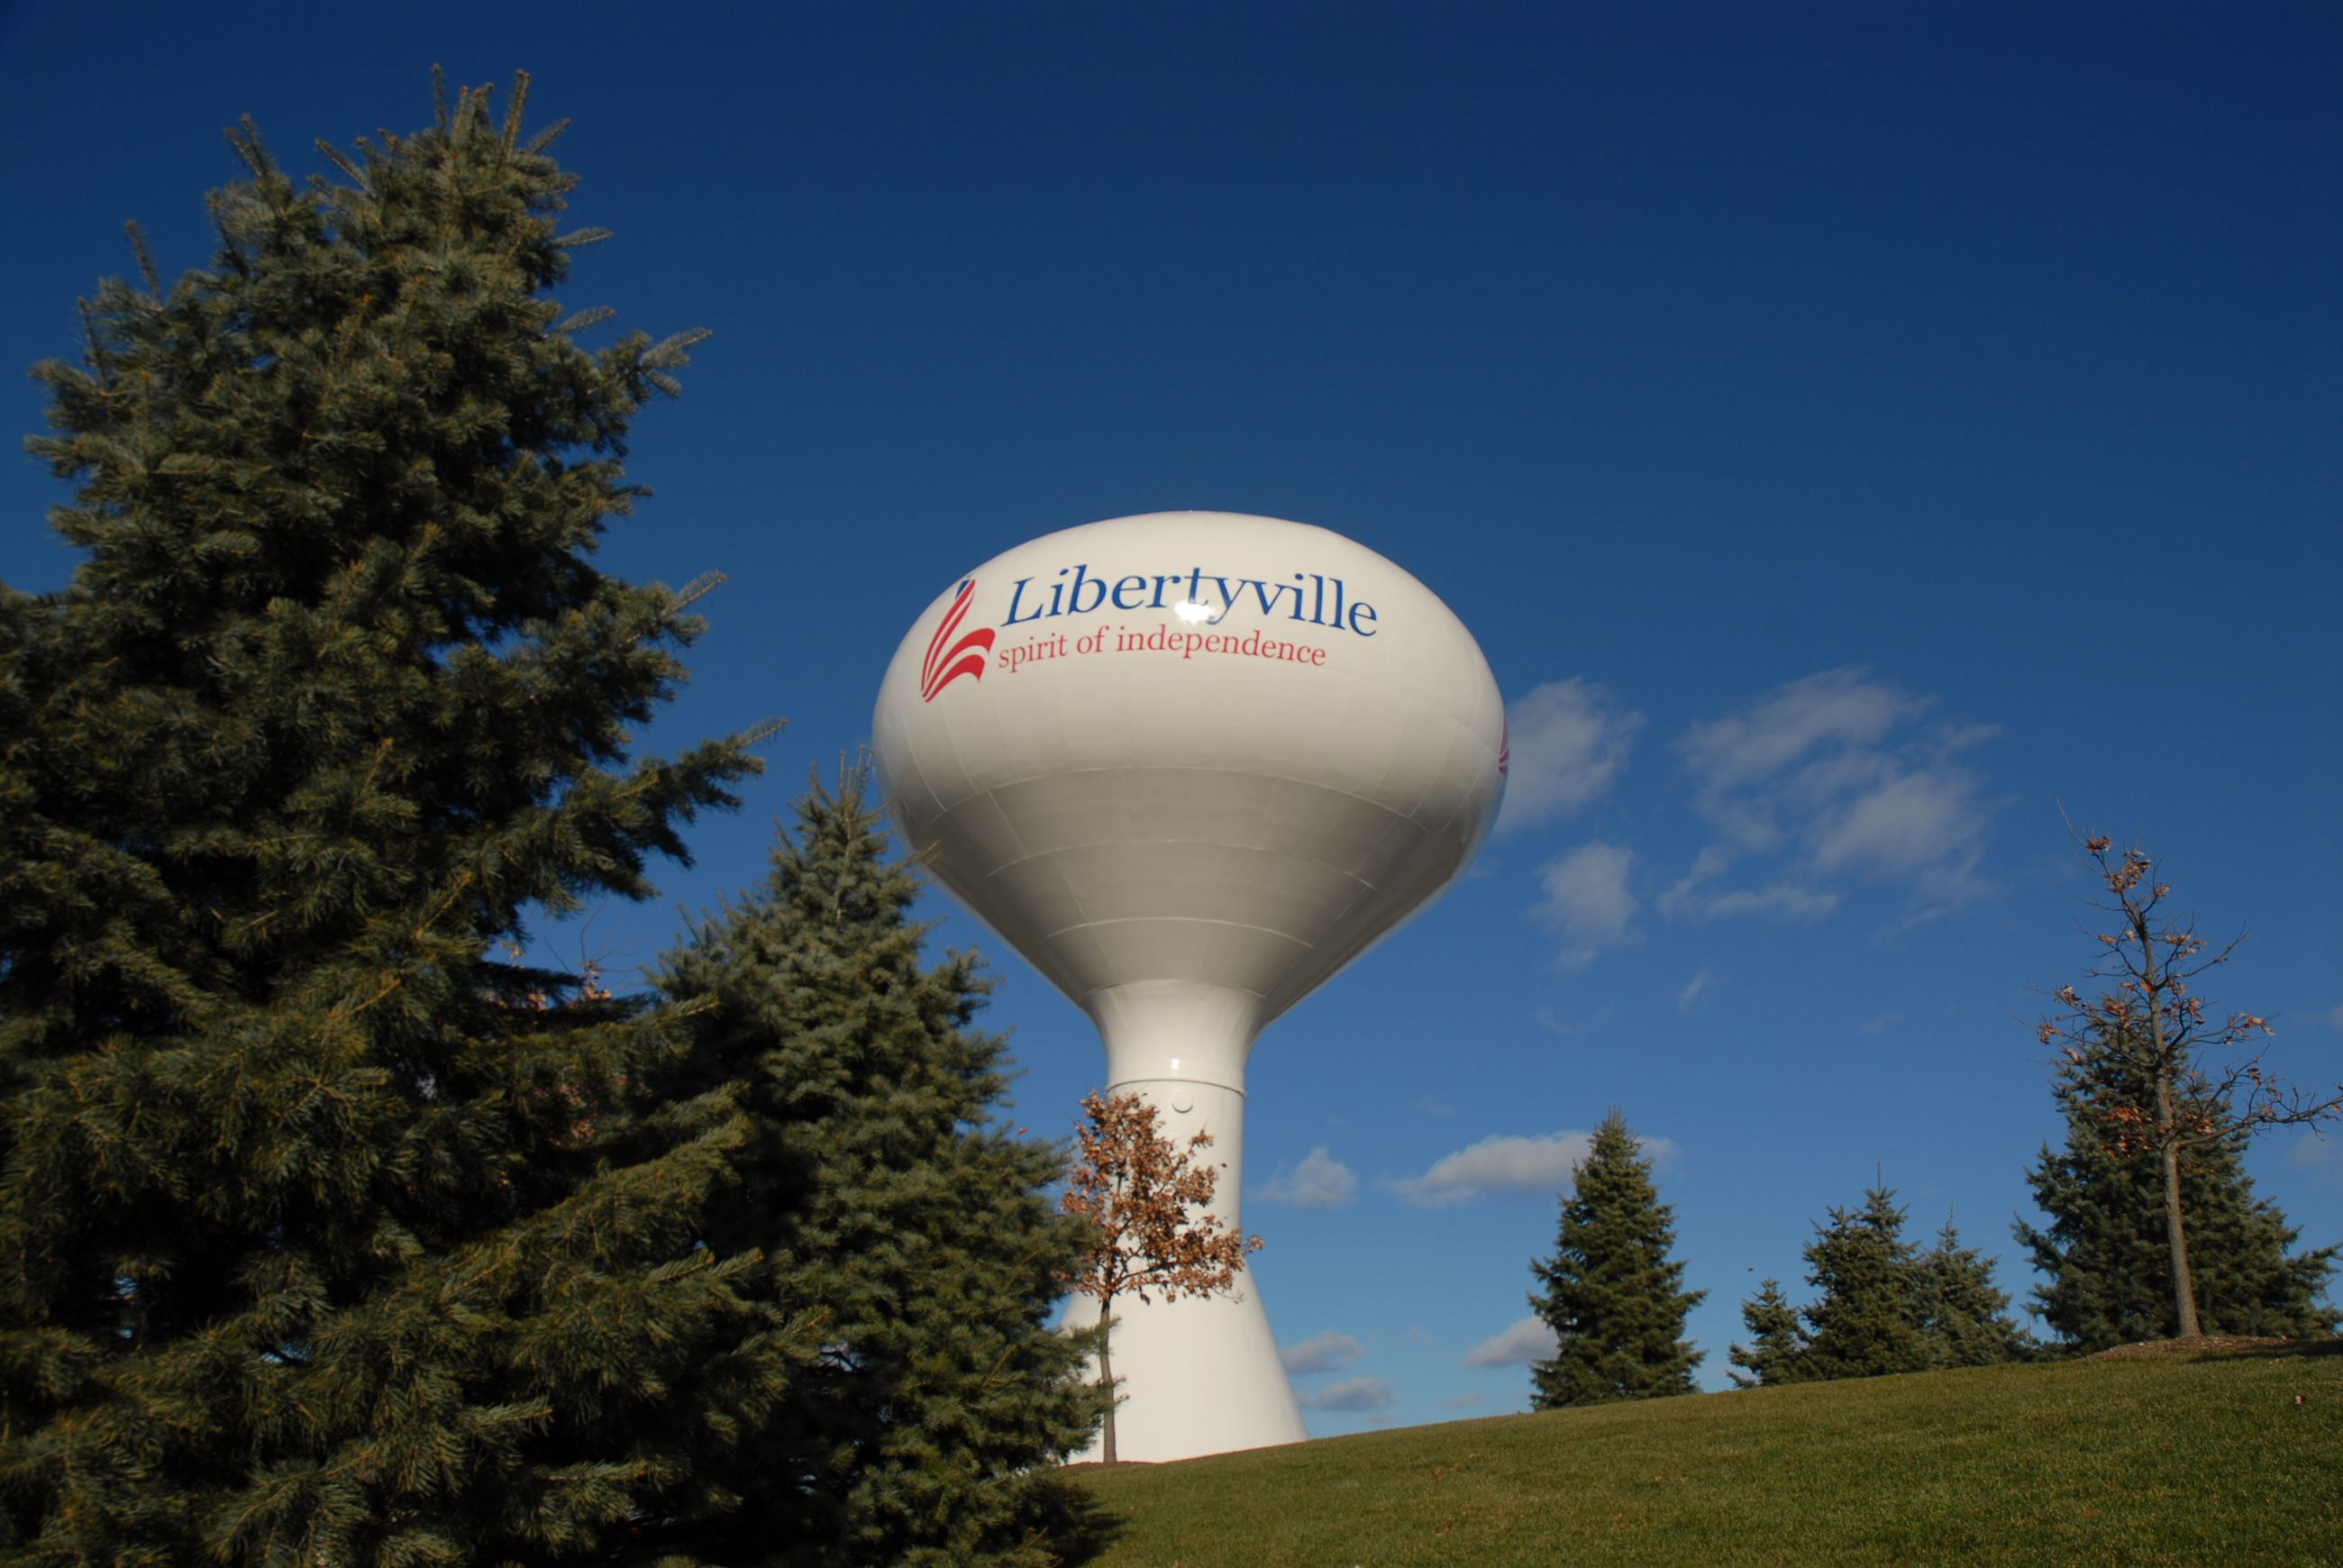 Libertyville Water tower